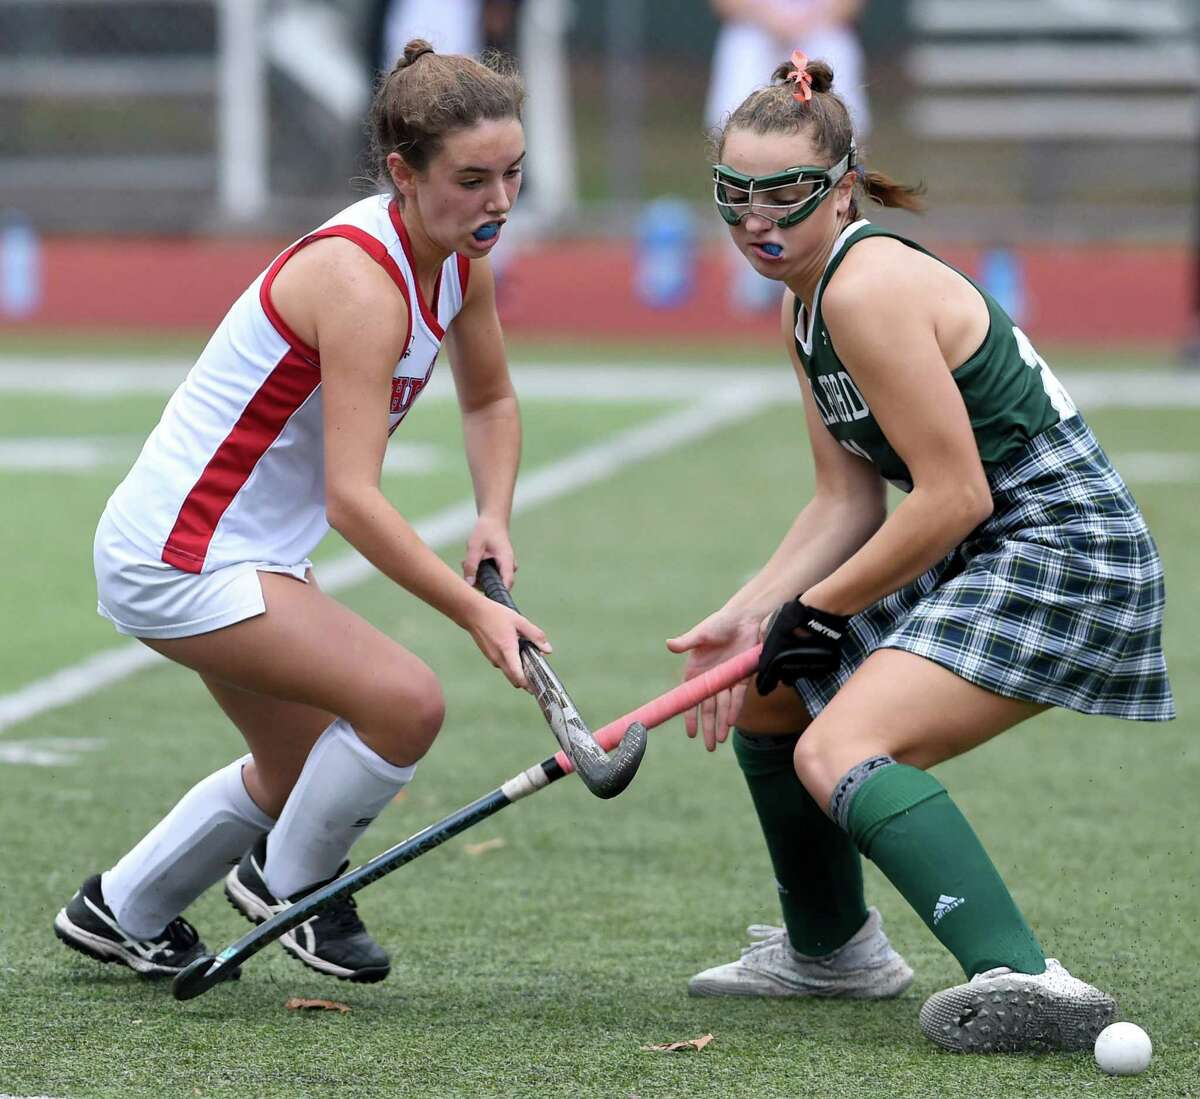 Leah Black of Cheshire (left) and Maddie Epke of Guilford fight for the ball in the SCC Division A field hockey championship at Cheshire High School on November 11, 2020.